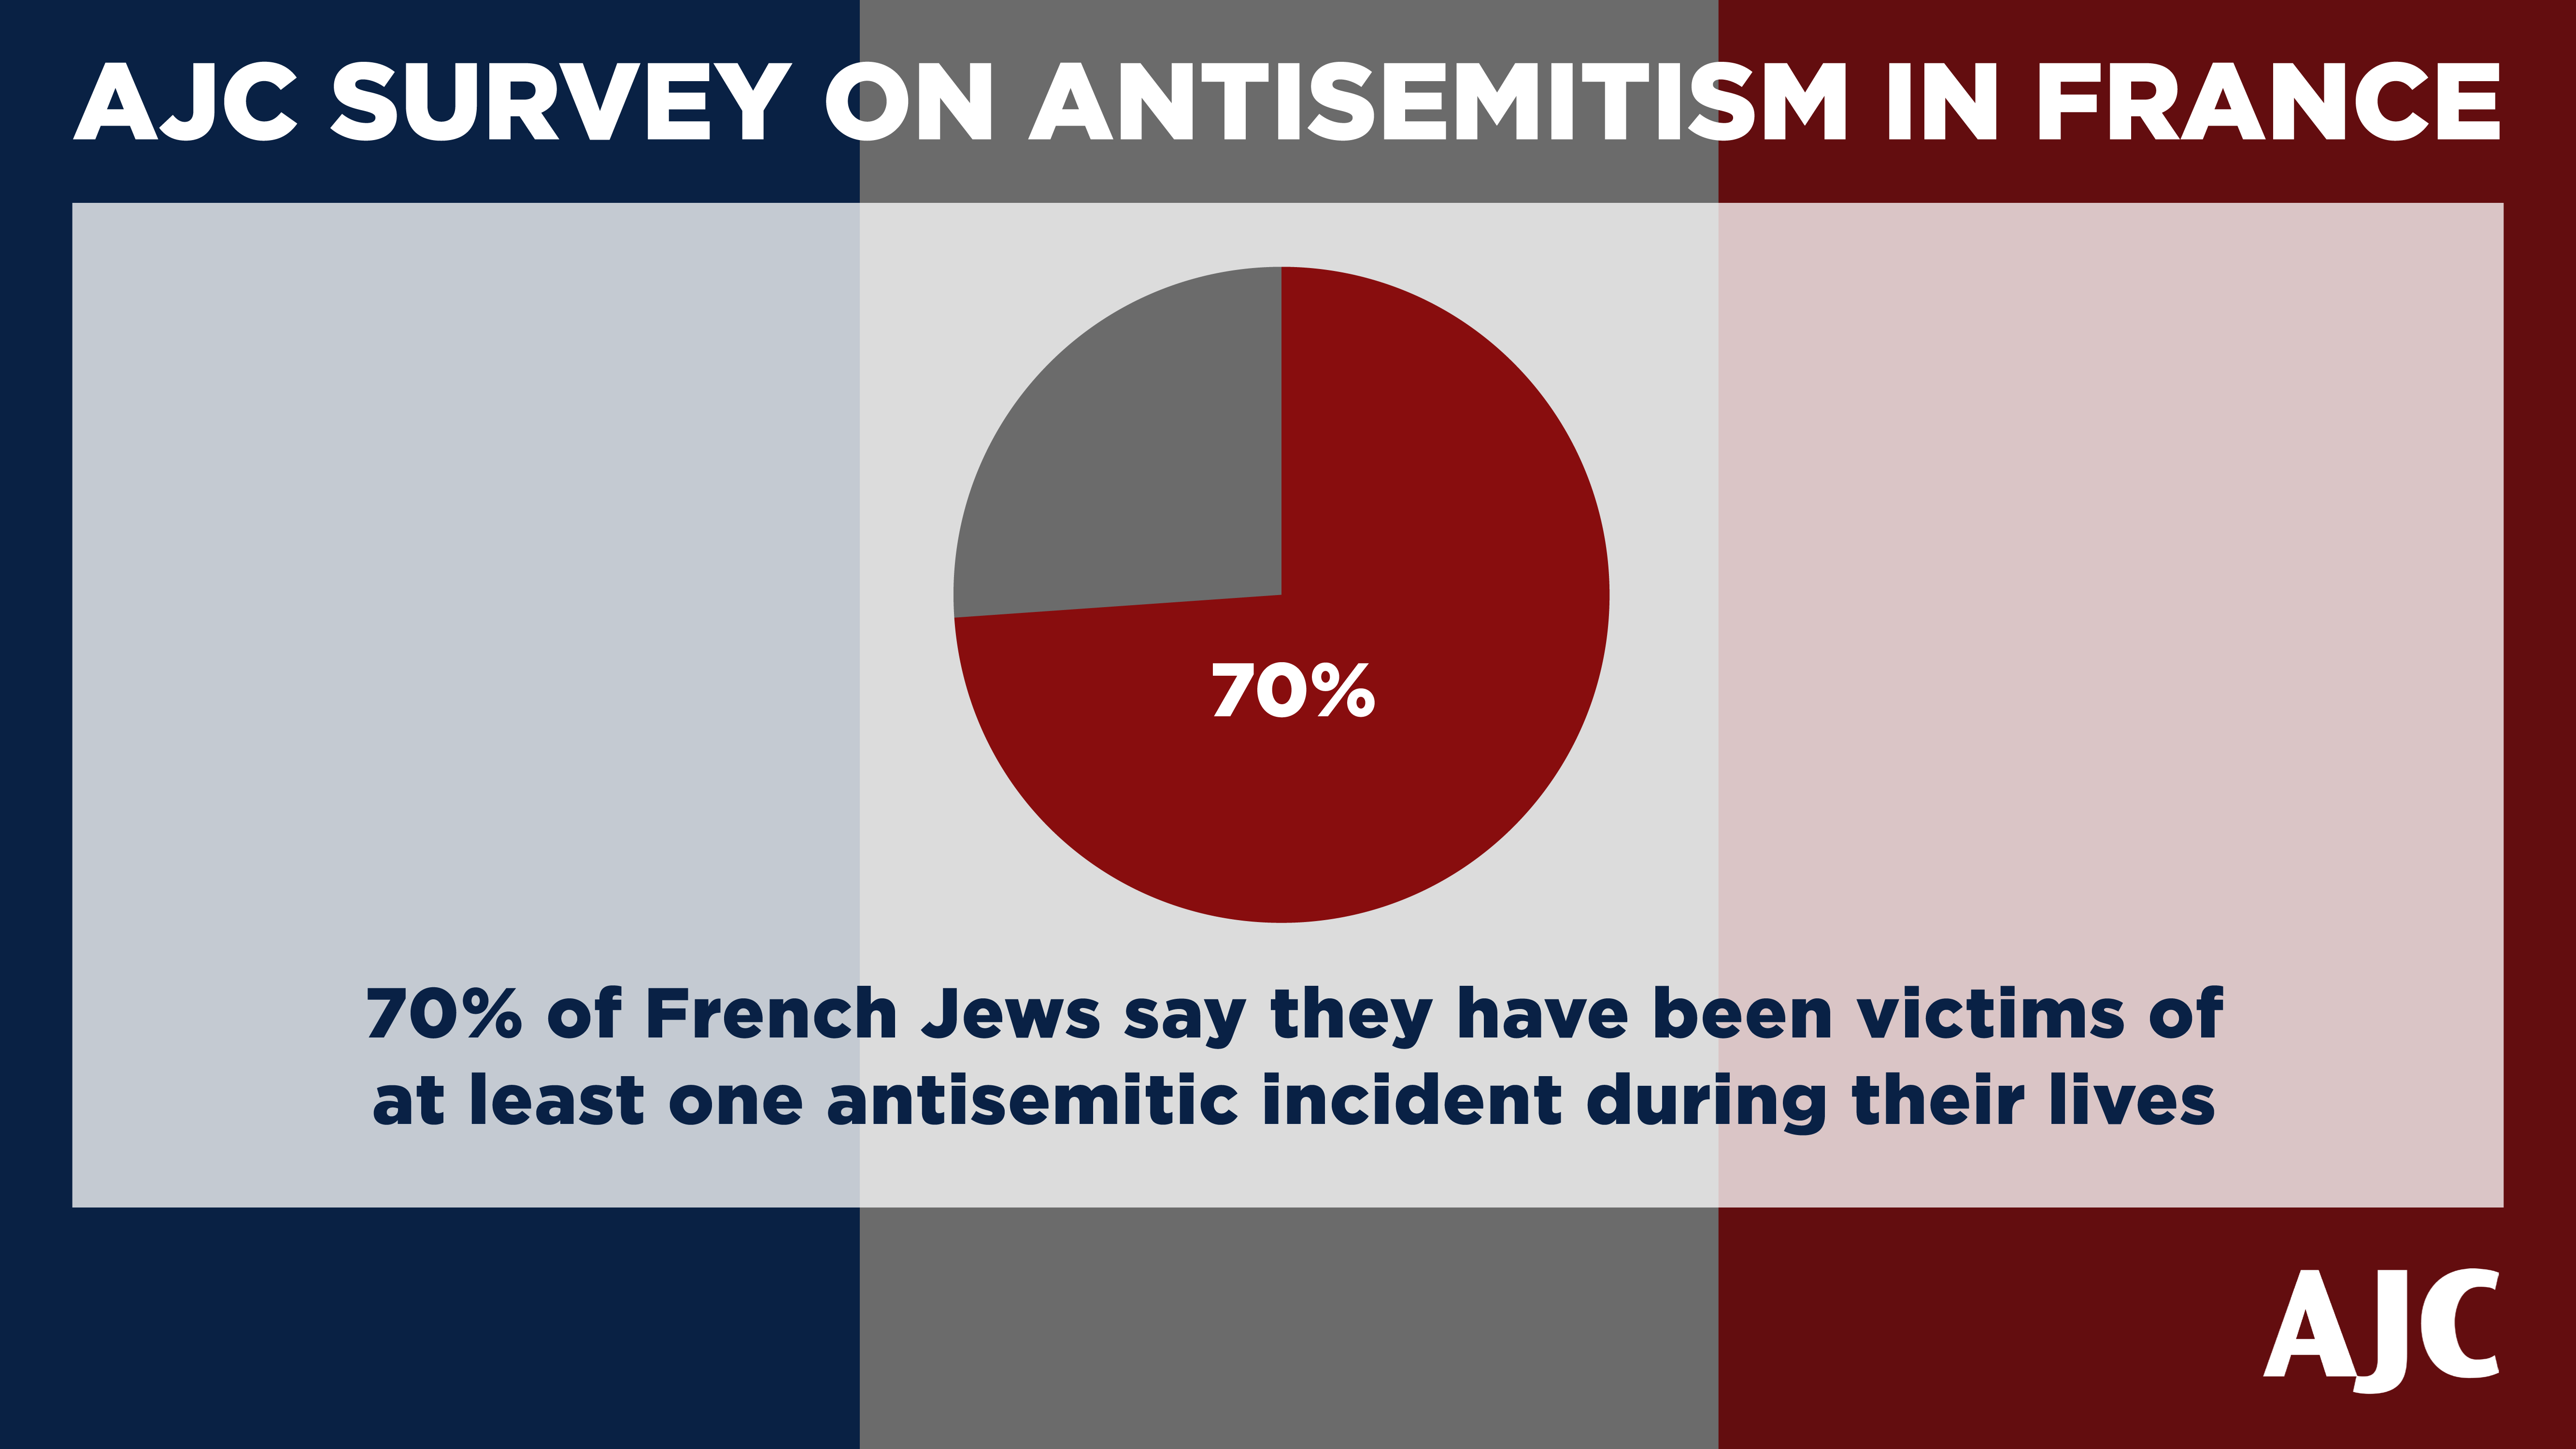 AJC Paris Survey Graphic Showing 70% of French Jews believe antisemitism is a problem